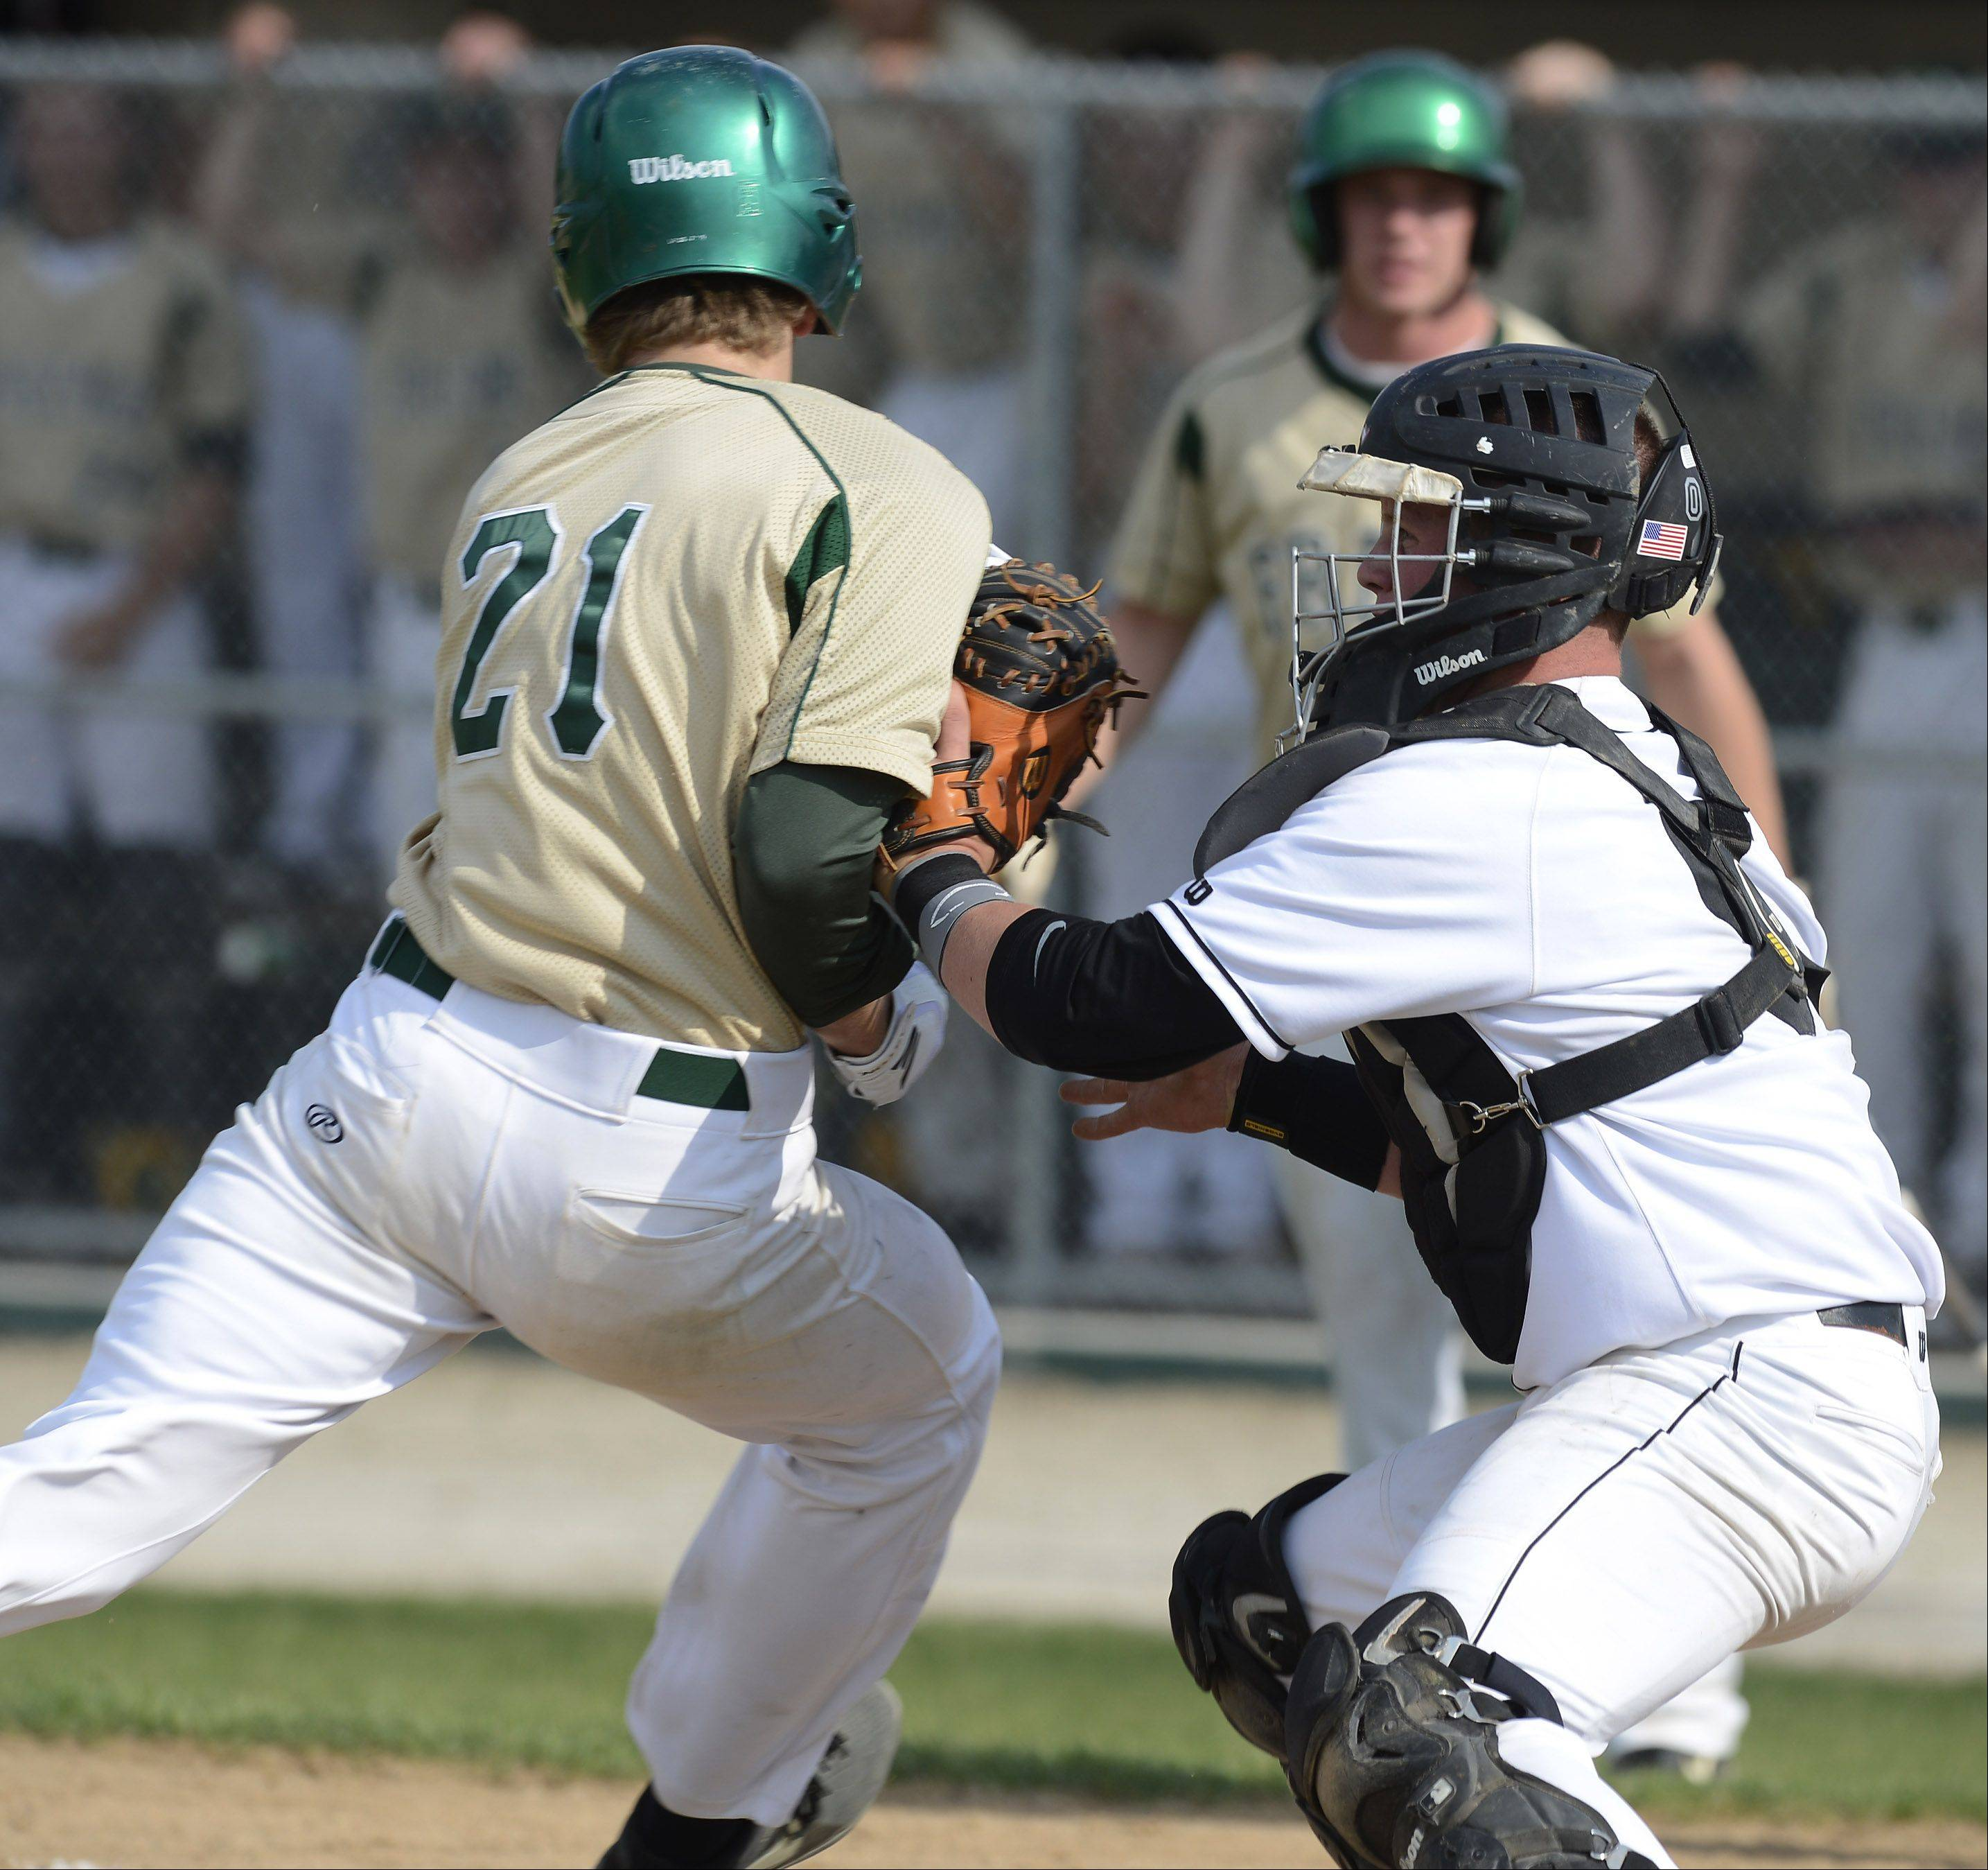 Libertyville catcher Evan Skoug tags out Fremd's Marcus Middlebrook at the plate during the second inning of the Glenbrook North sectional semifinal Wednesday.